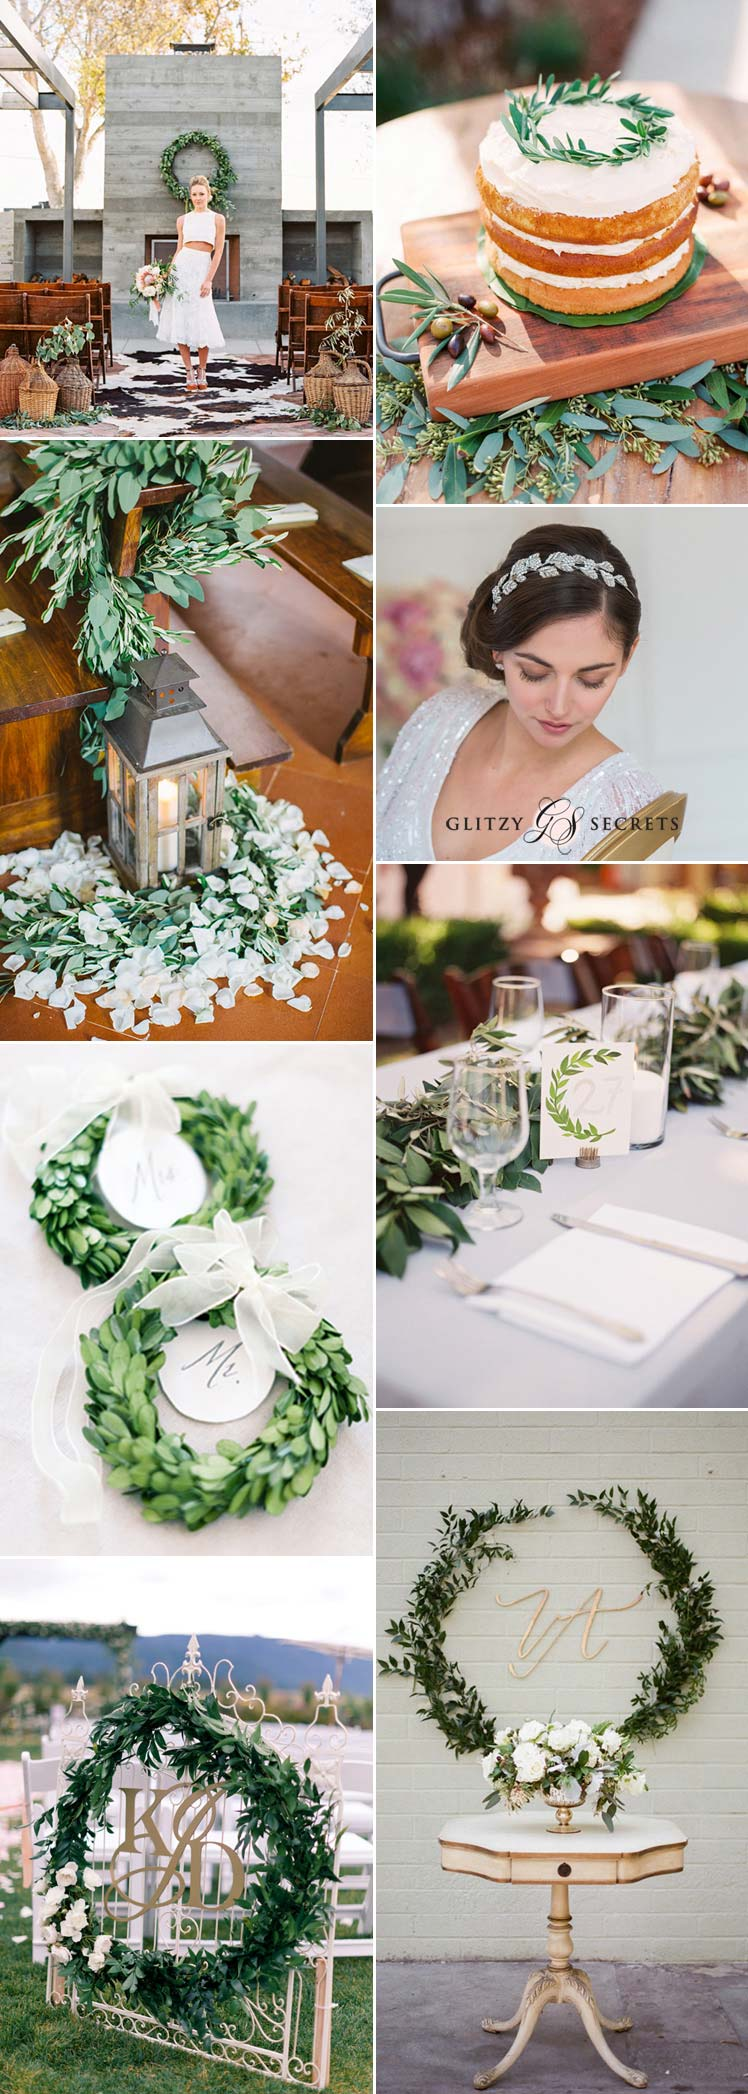 beautiful laurel leaf wedding inspiration